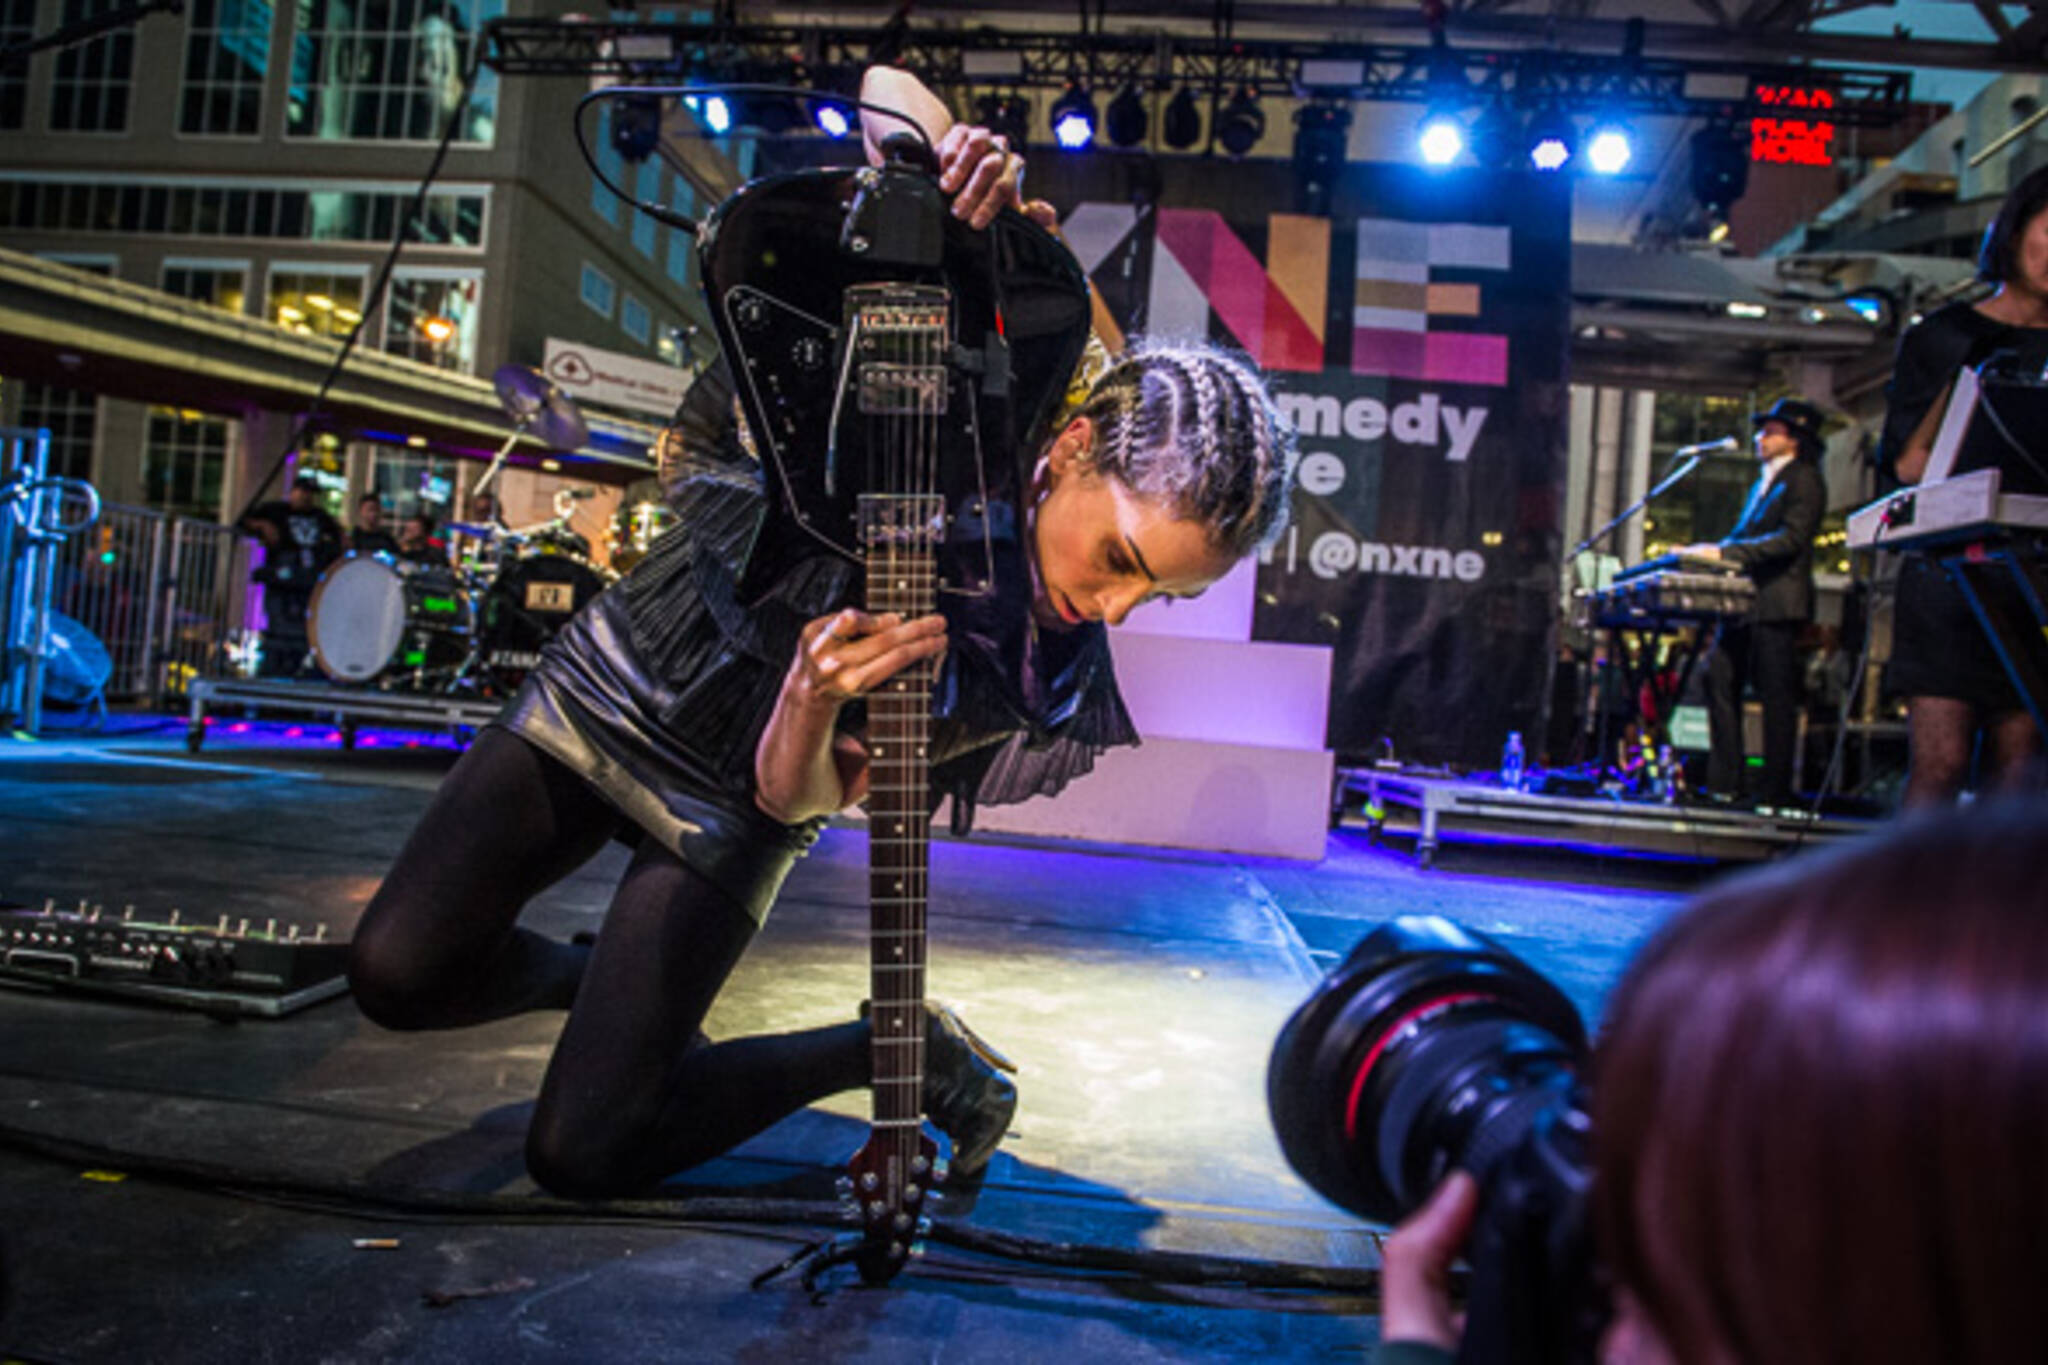 The top 50 photos from NXNE 2014 in Toronto